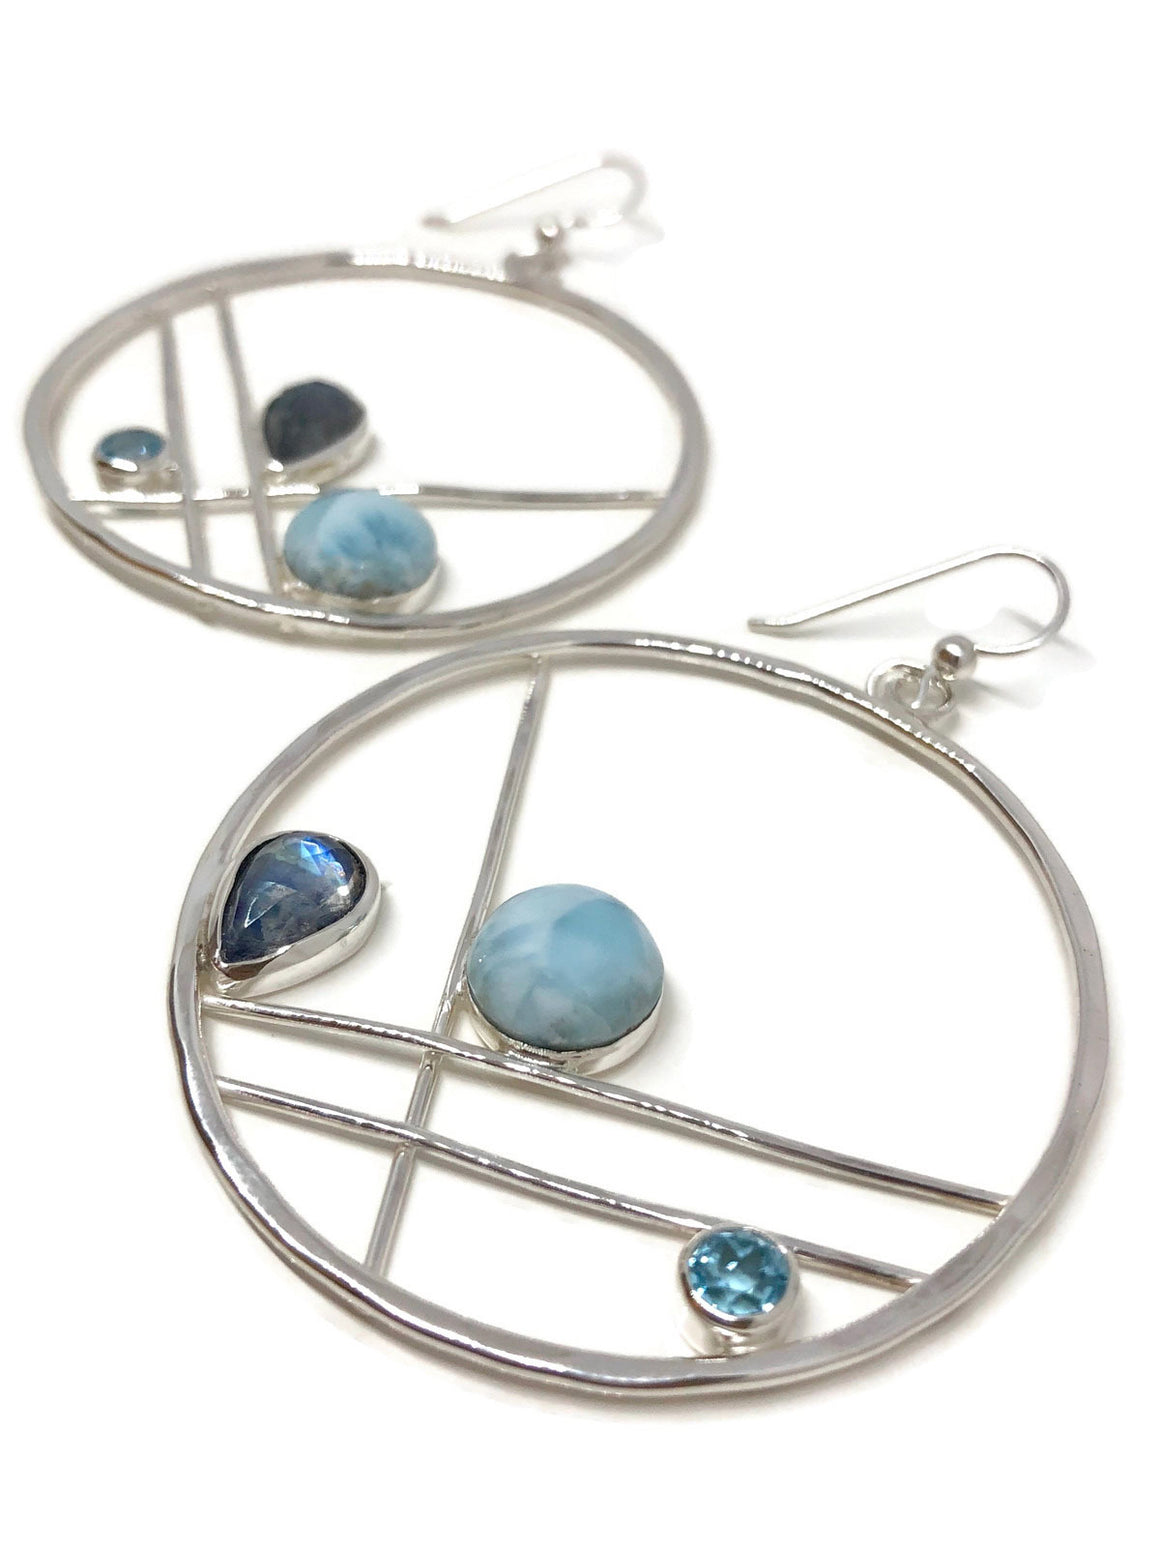 Larimar Earrings Sterling Silver with Moonstone and Topaz